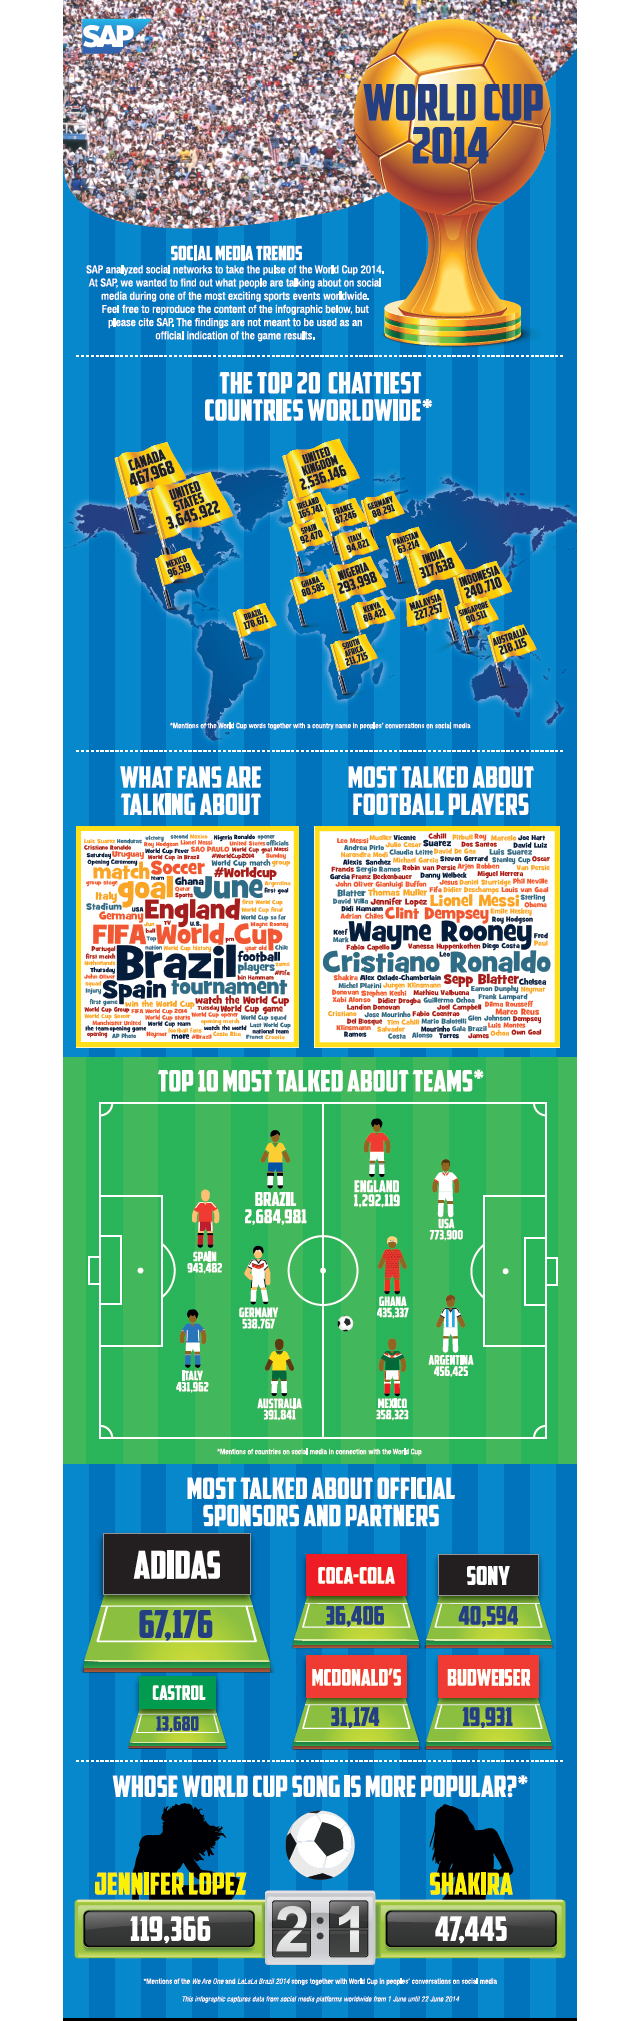 Data Shows What Players Most Liked And Disliked For U S A Vs Germany World Cup Match World Cup Match World Cup World Cup Groups